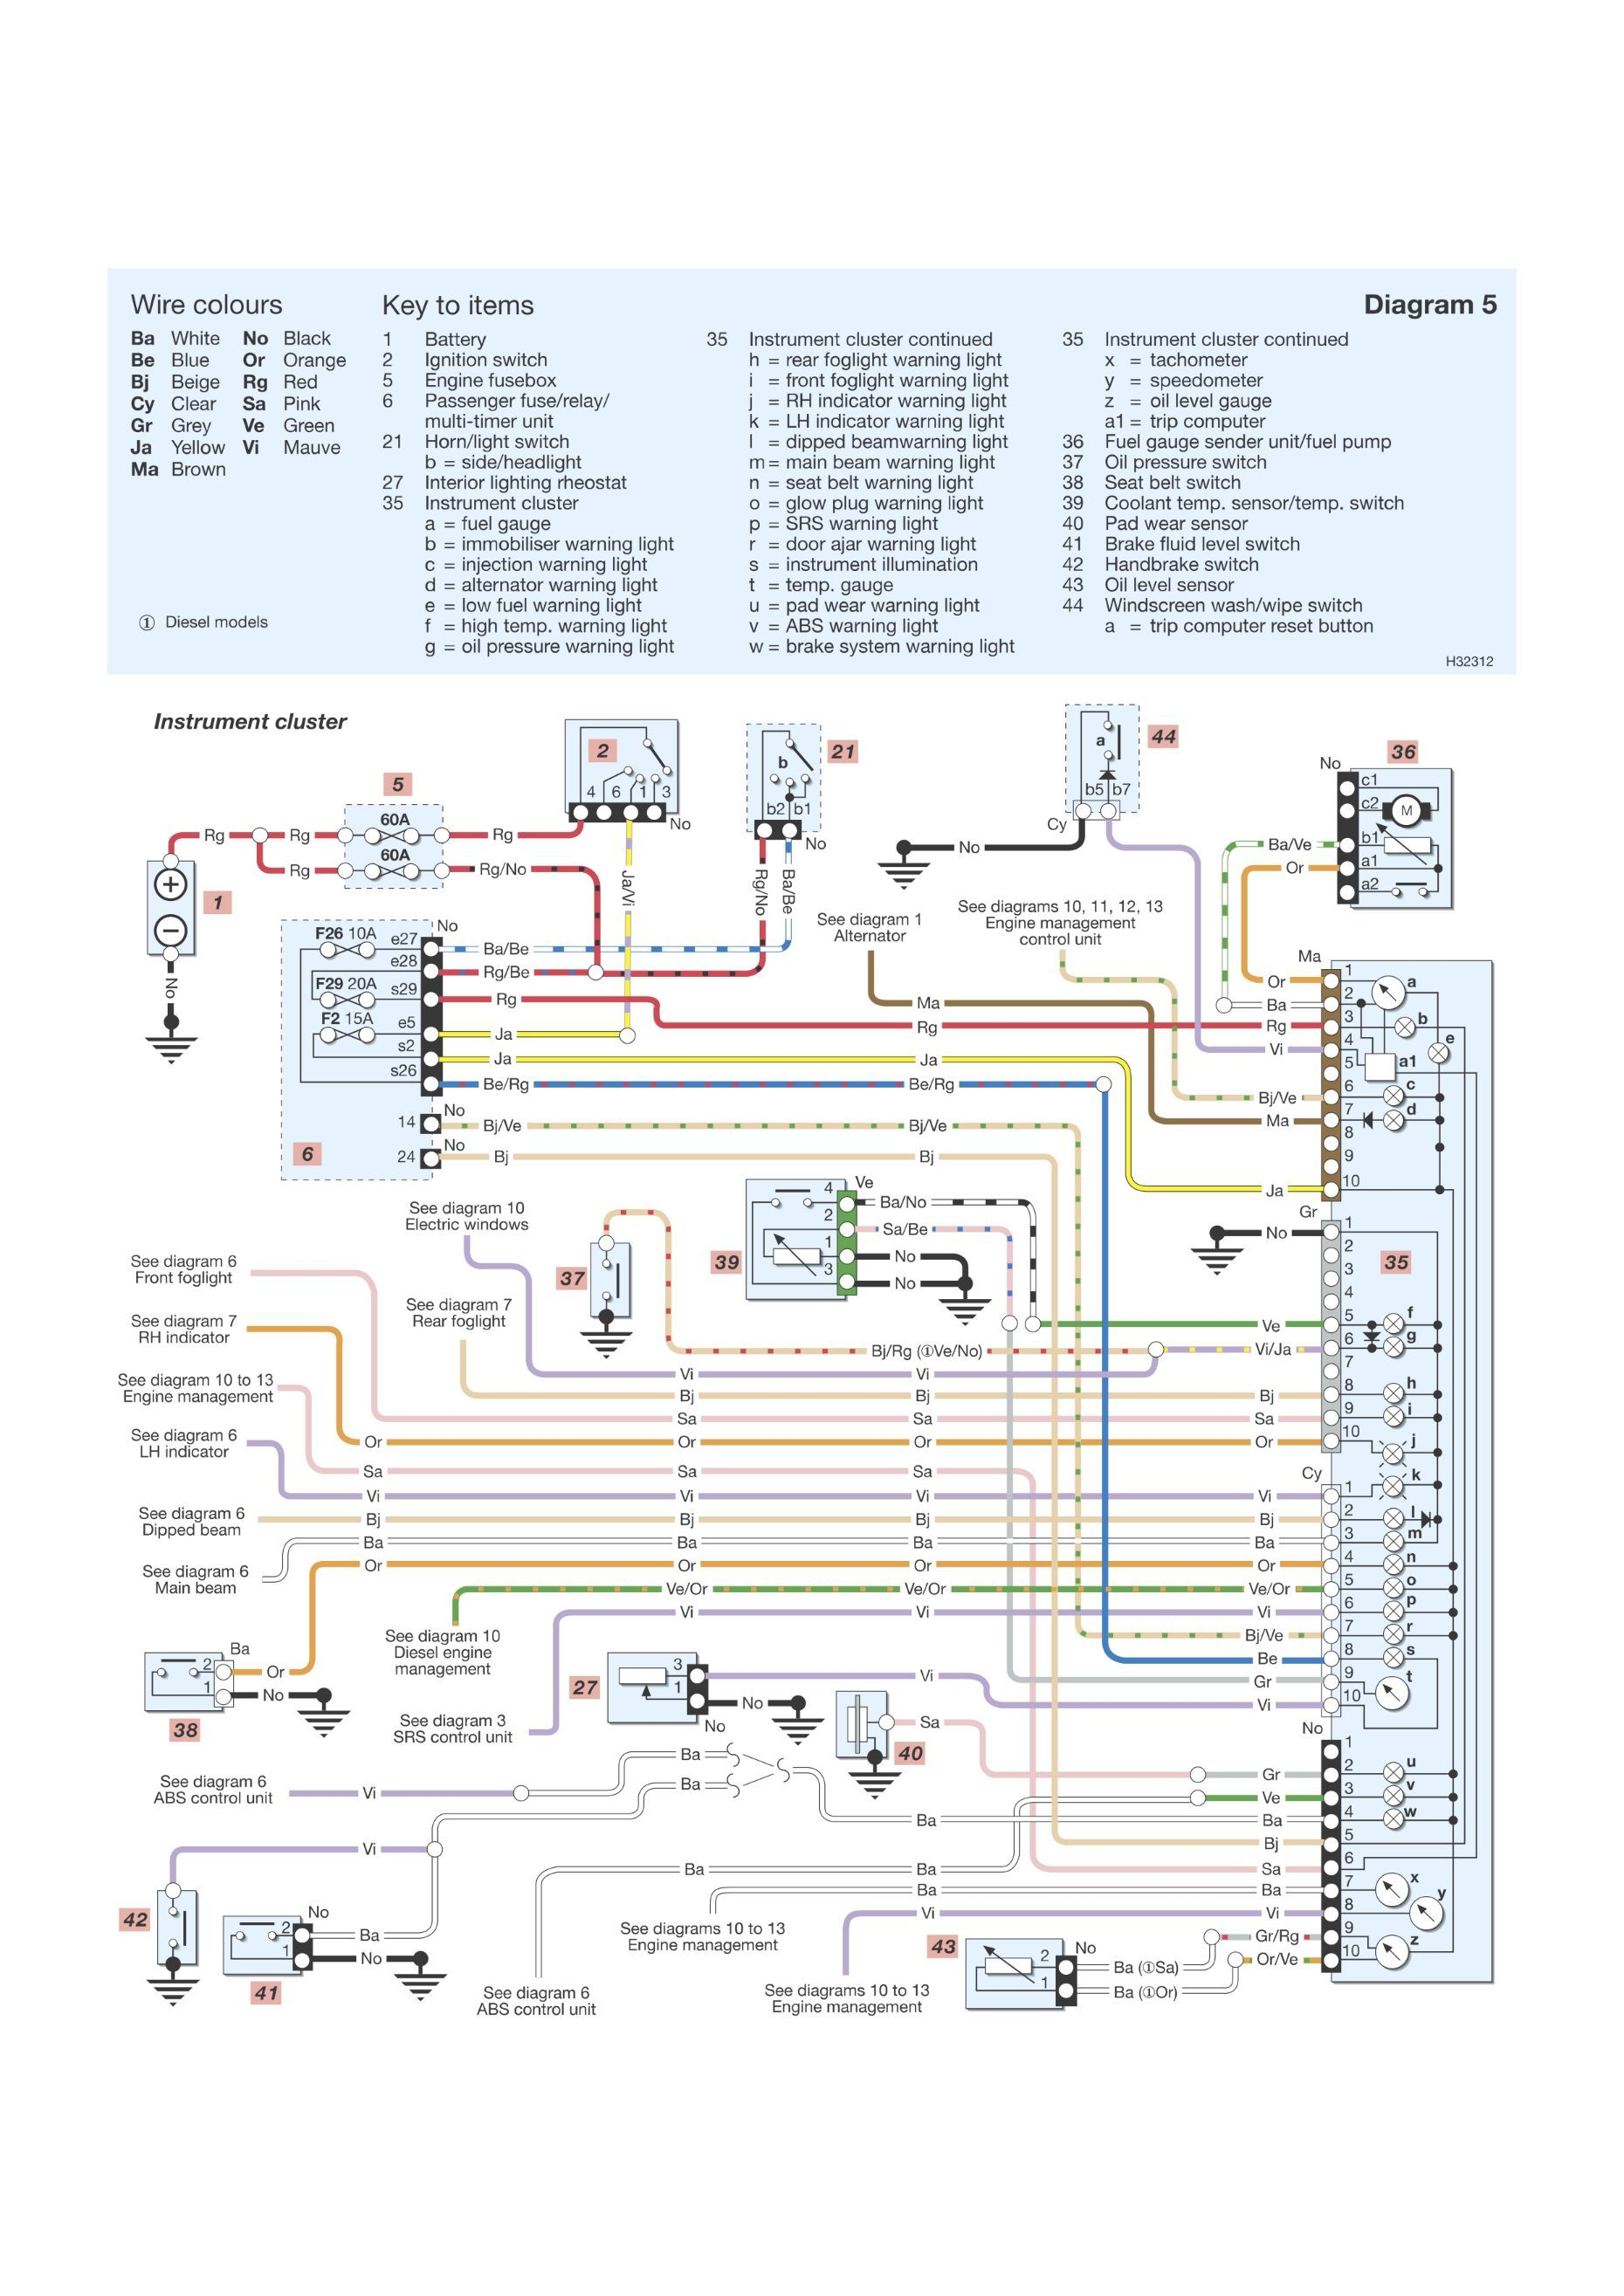 hight resolution of renault trafic wiring diagram download car stuff diagram cars wiring diagrams peugeot as well toyota land cruiser 1973 fj40 wiring